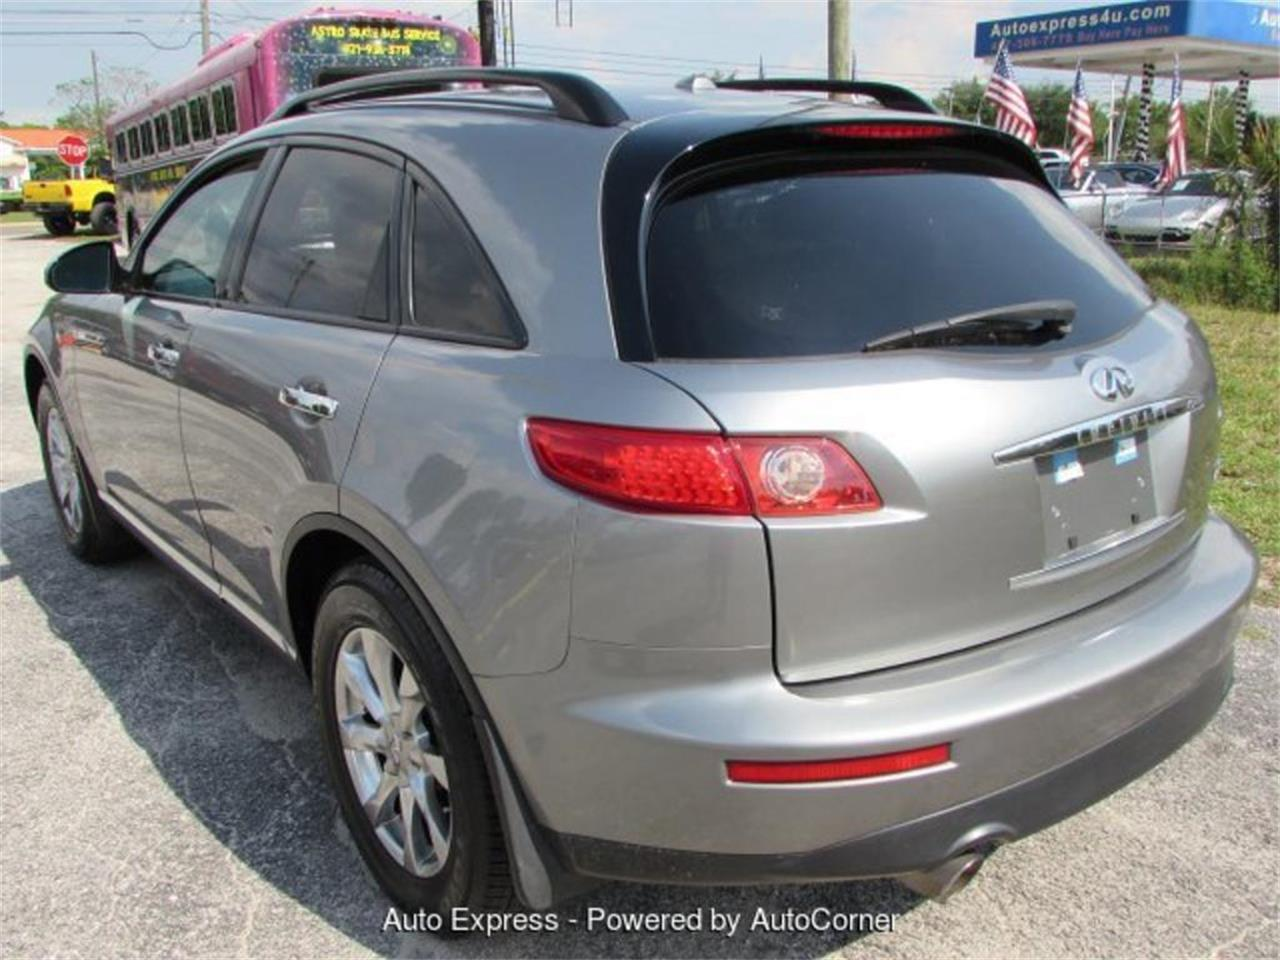 Large Picture of '08 Infiniti FX35 located in Orlando Florida - $9,999.00 Offered by Auto Express - Q27X